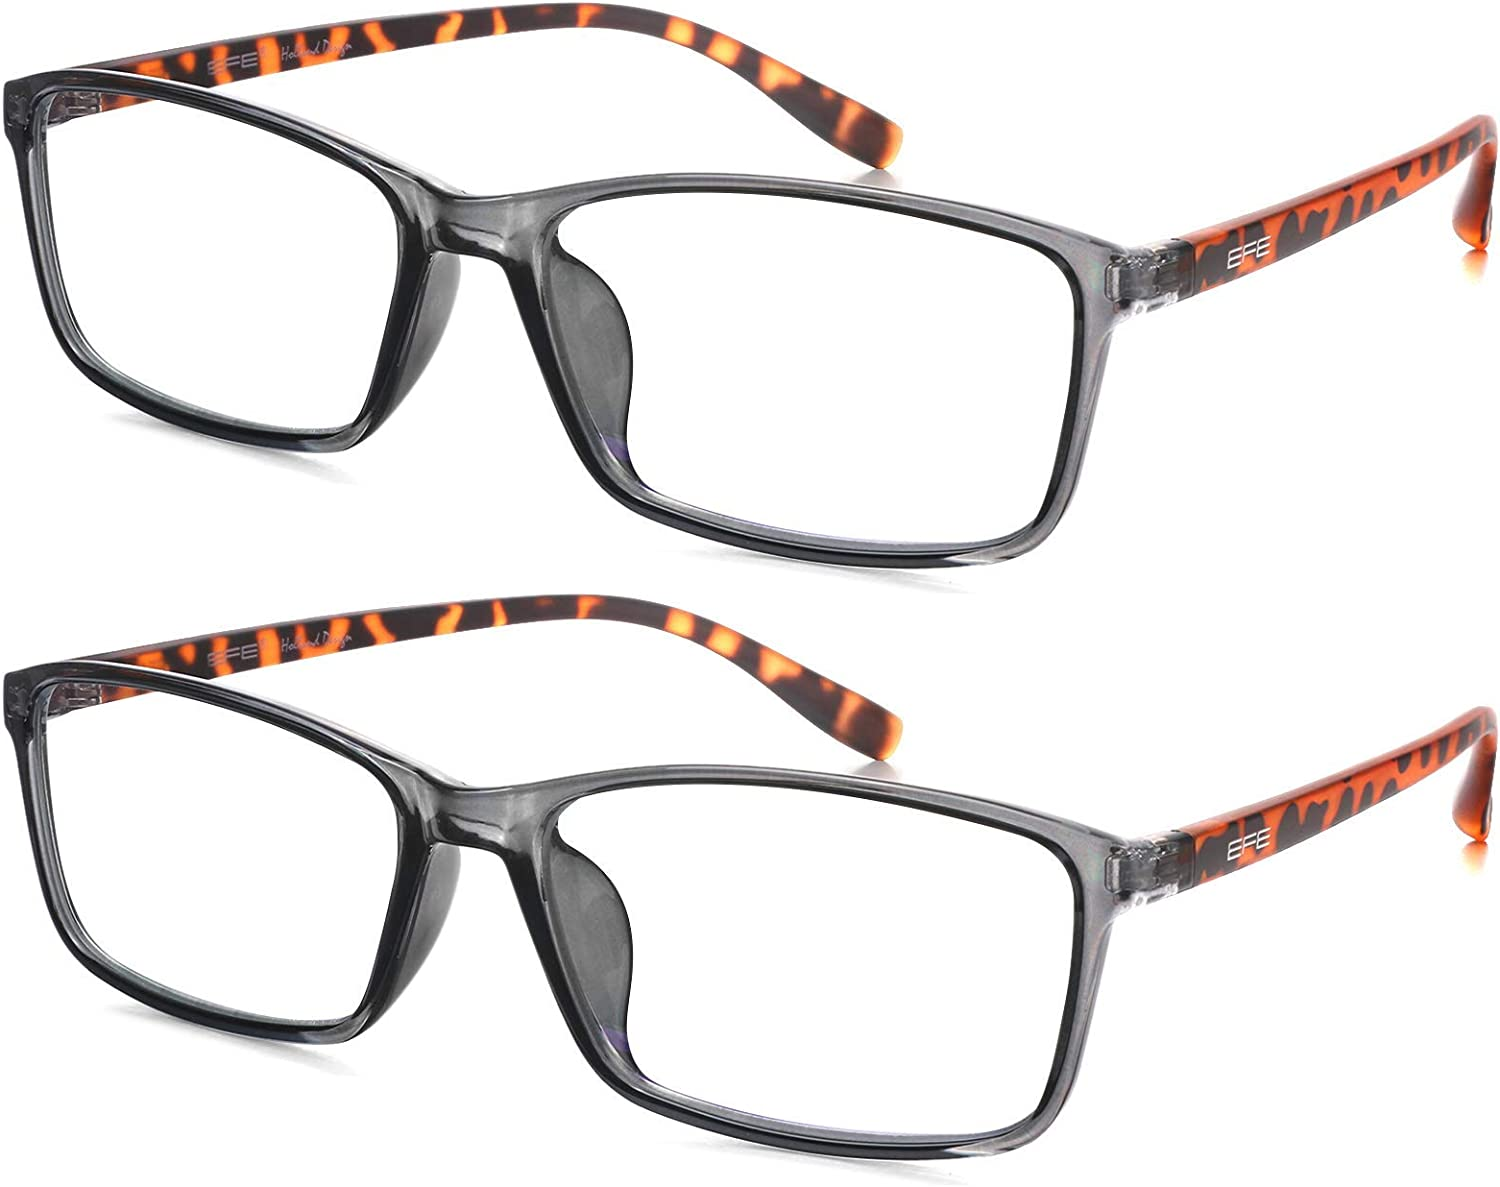 Blue Light Glasses 2 Pack Torto Ranking TOP1 Virginia Beach Mall Computer with Classic Eyeglasses